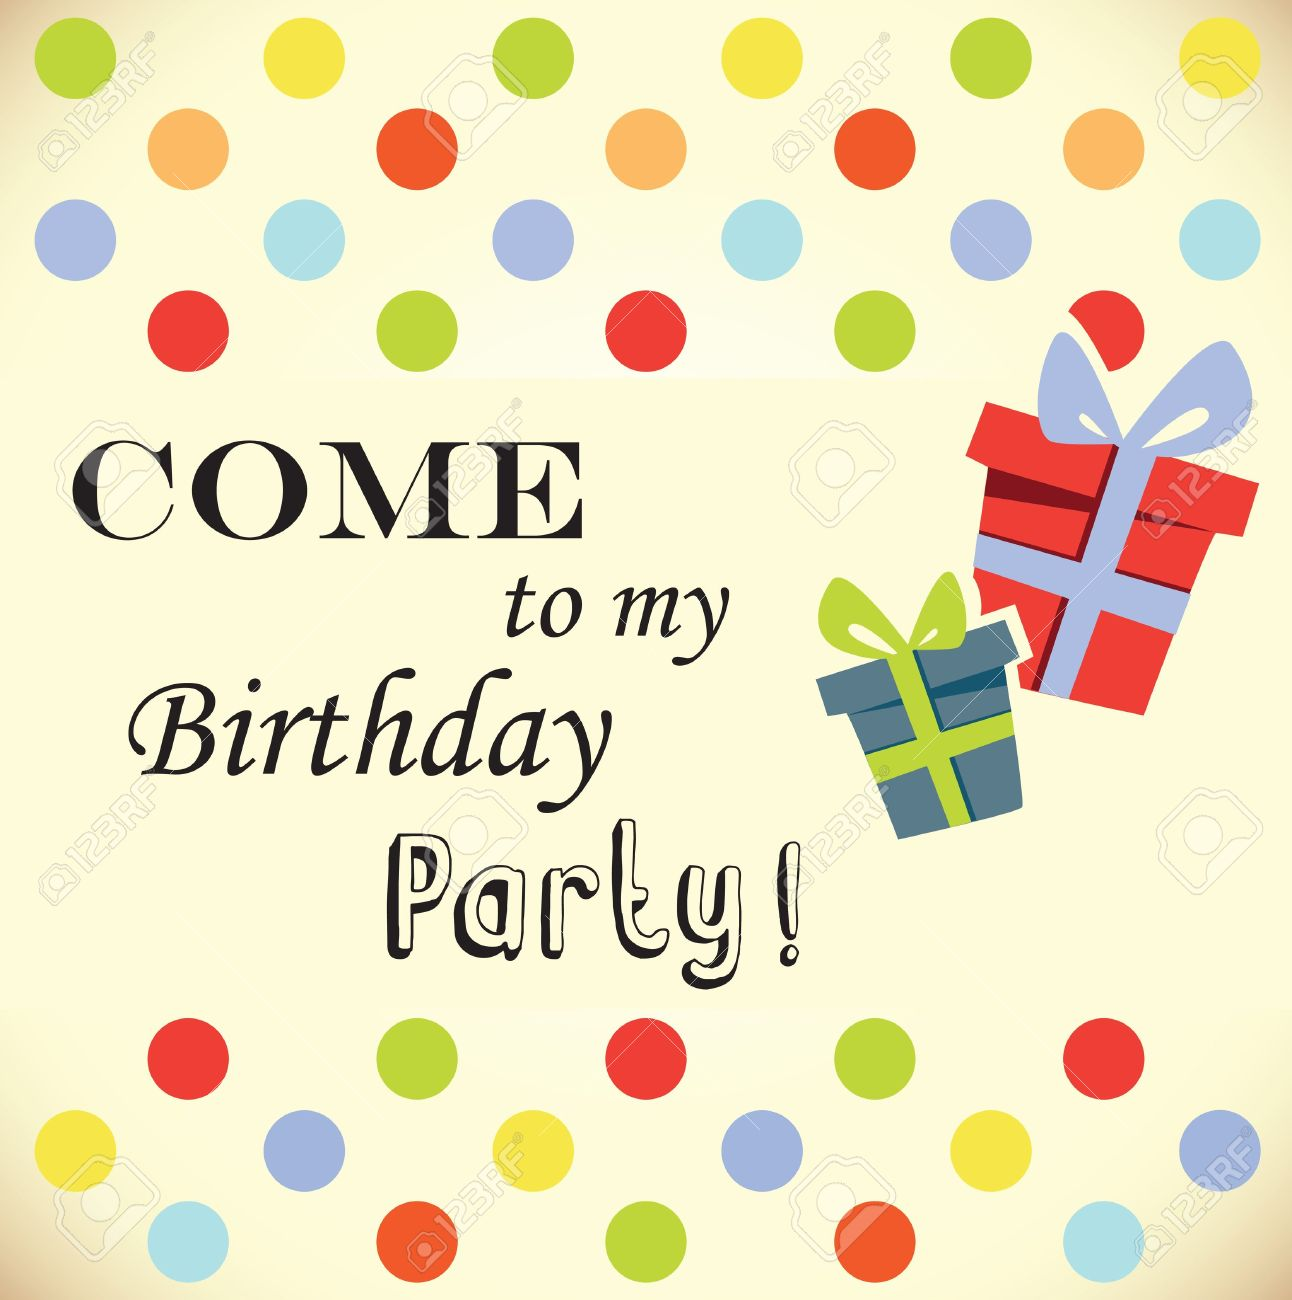 Birthday Party Invitation Card Royalty Free Cliparts, Vectors, And.